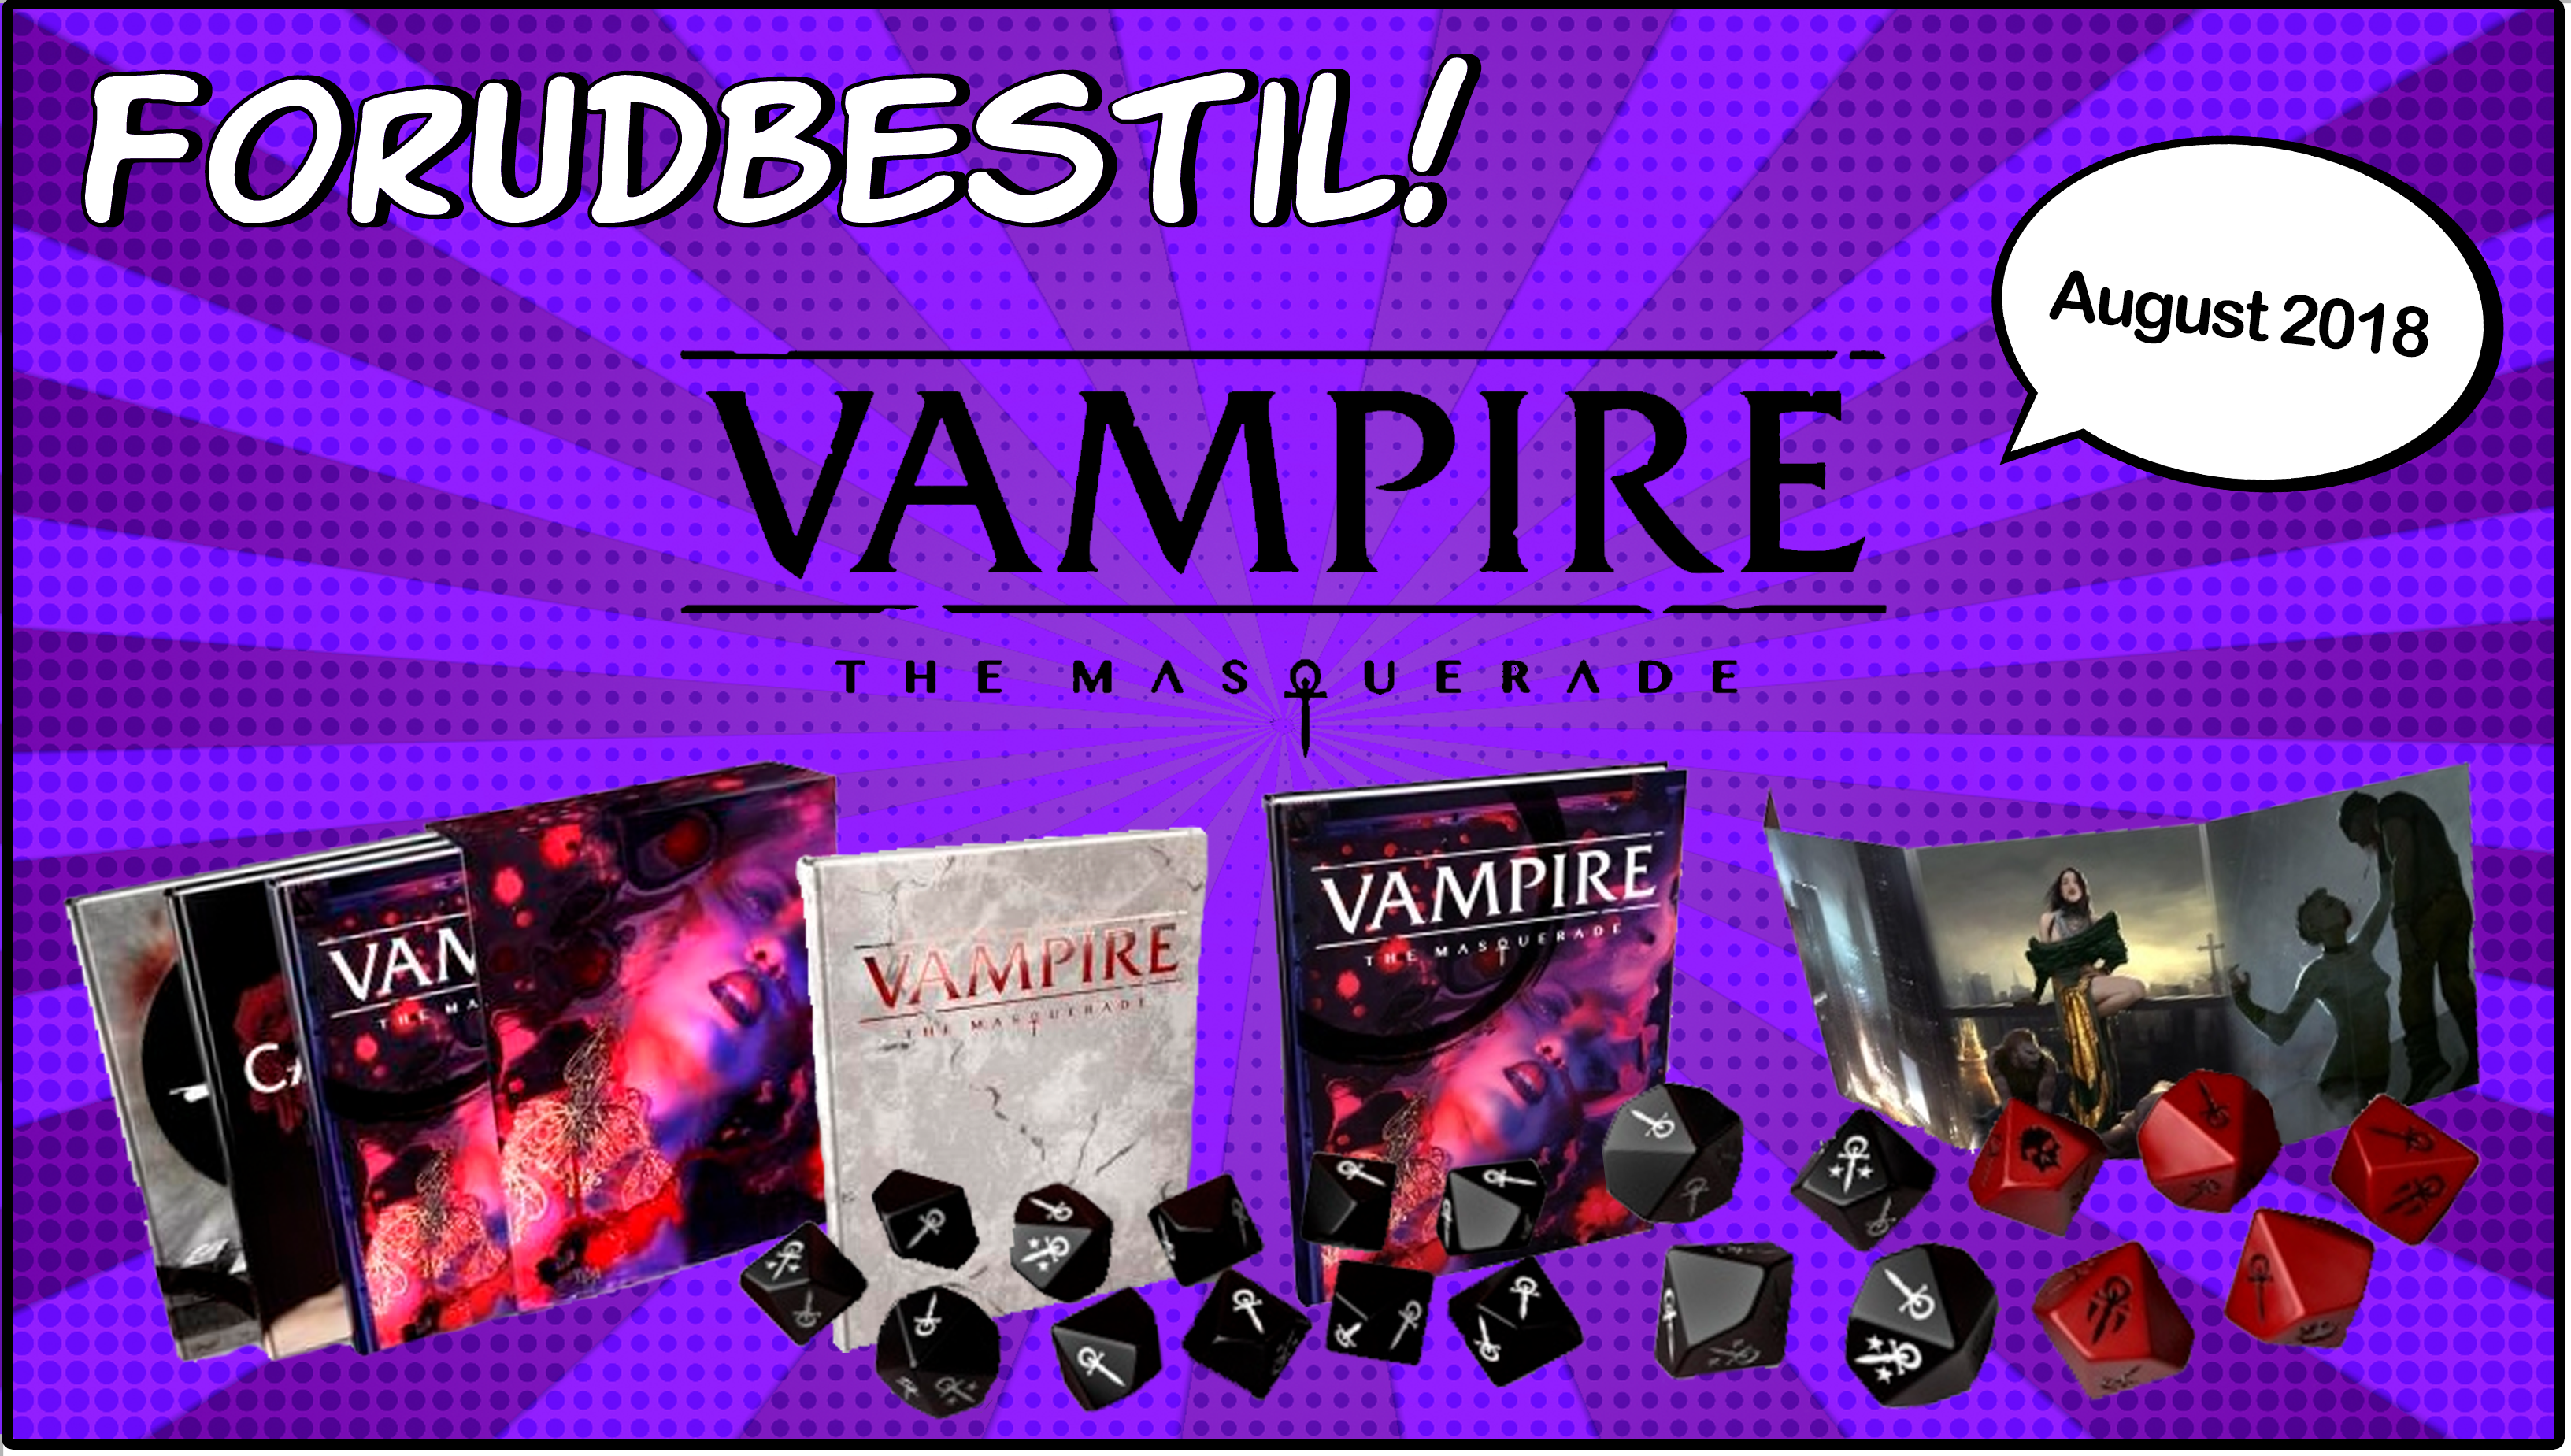 Forudbestil Vampire the Masquerade. Dice Set, Notebook, Storyteller Screen